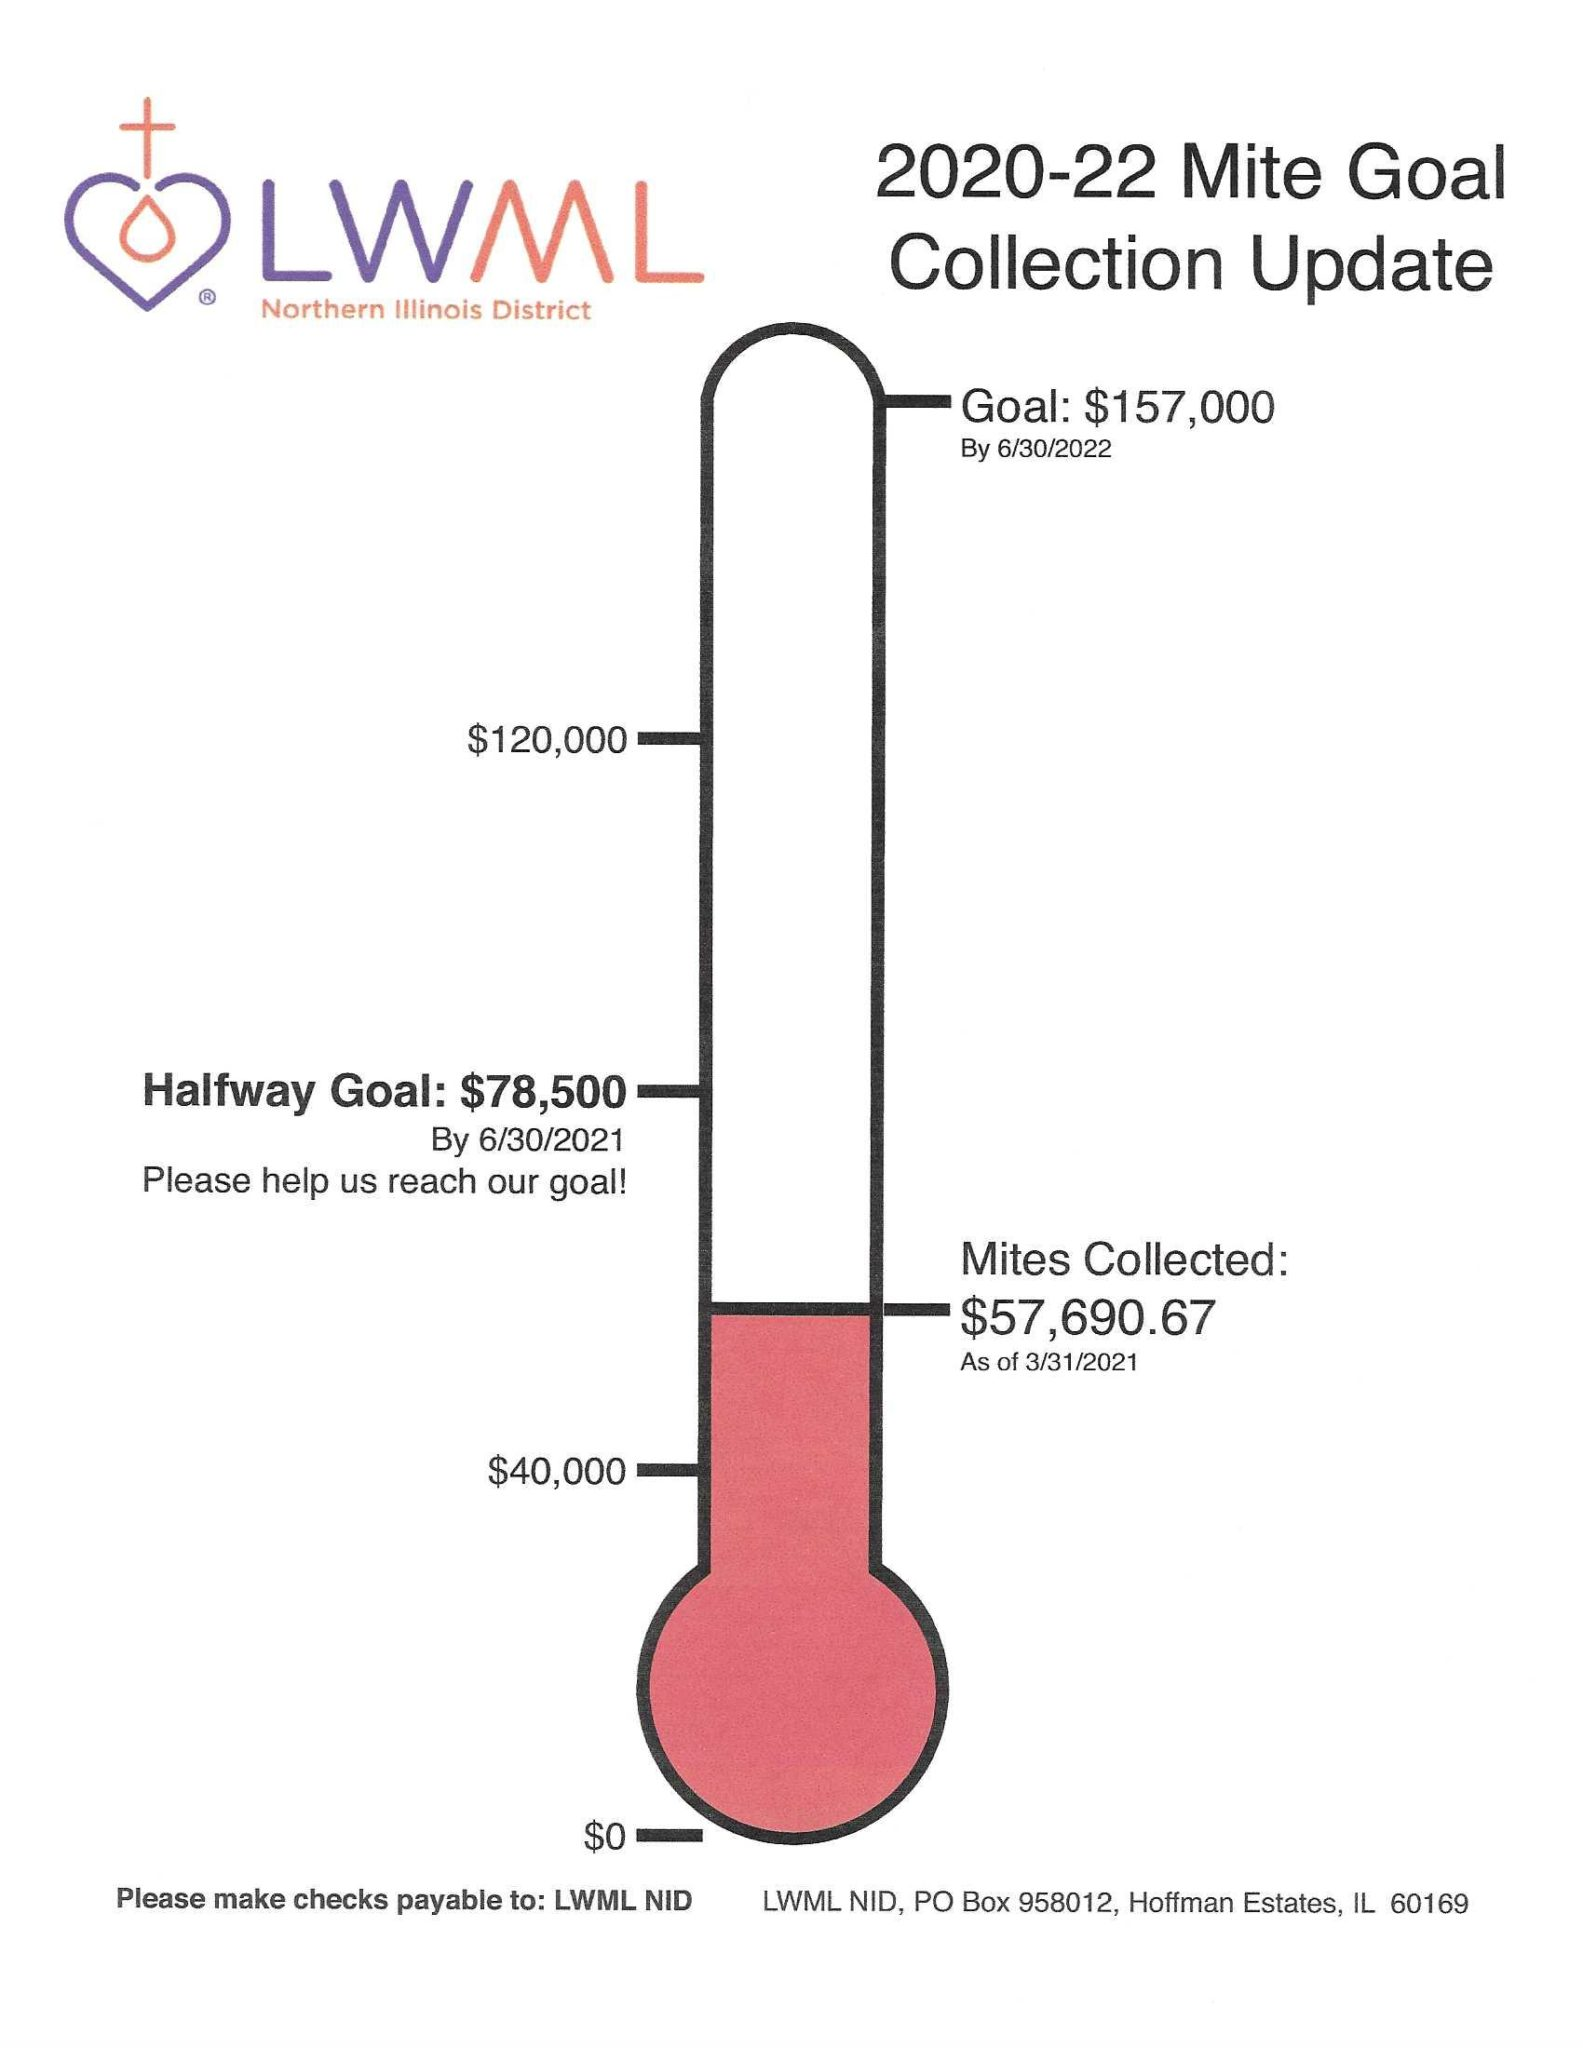 2020 - 2022 mite goal collection update as of March 31, 2021.